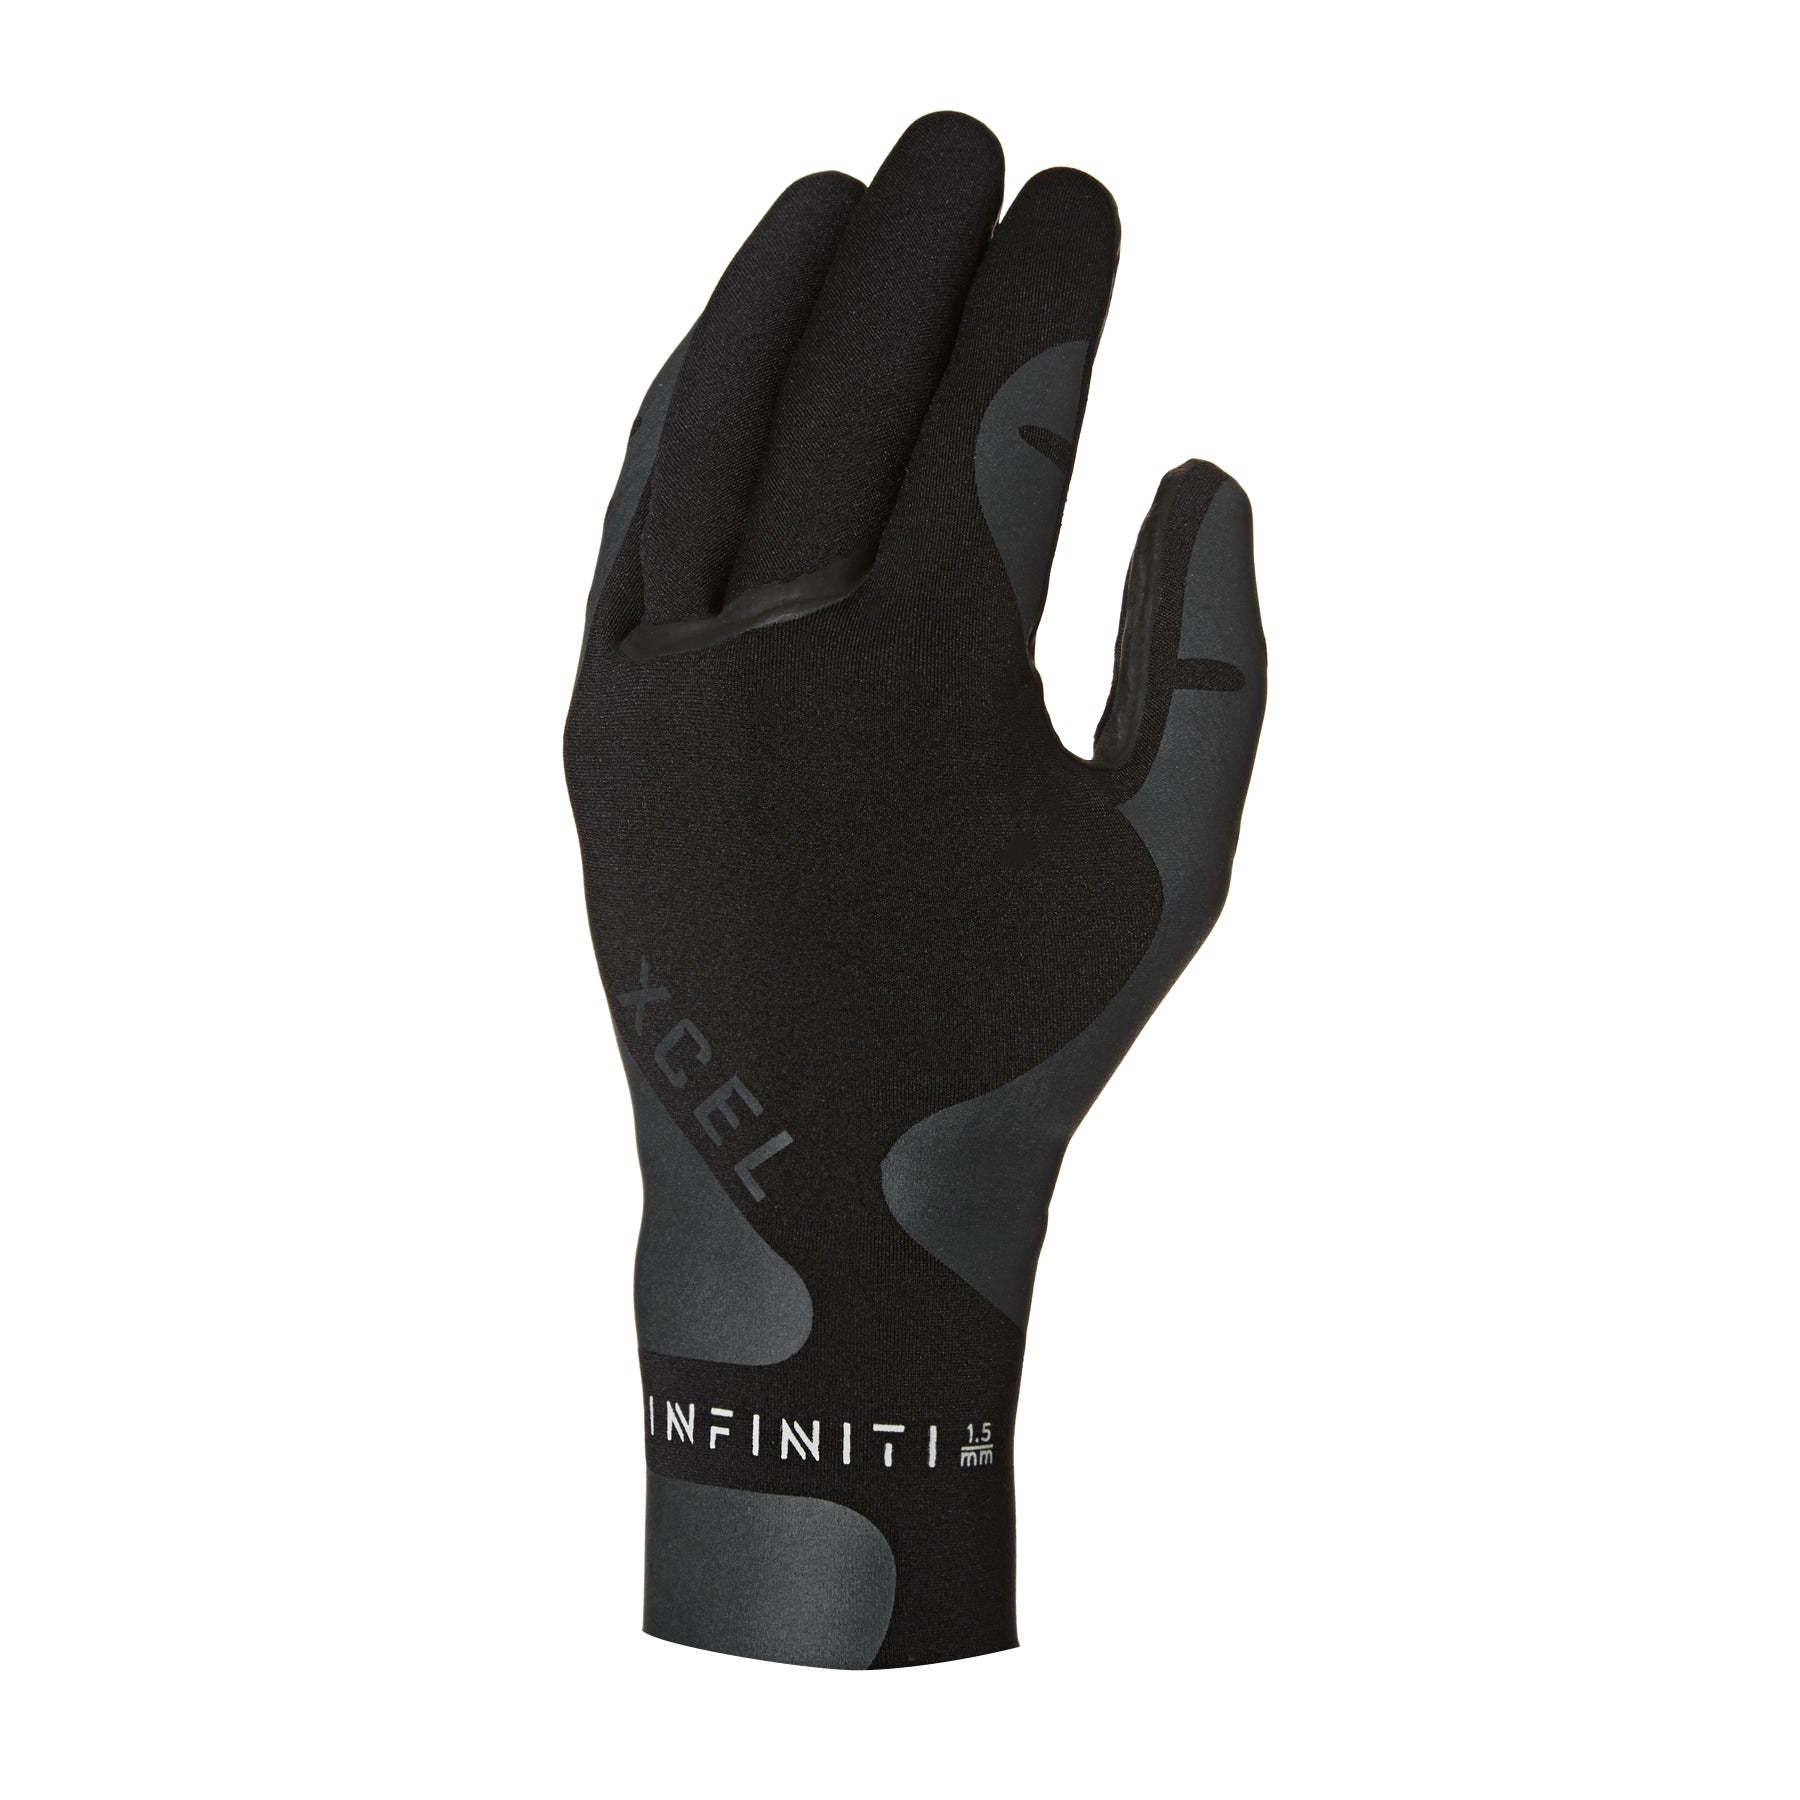 Xcel Infiniti 1.5mm 2019 5 Finger Wetsuit Gloves - Black